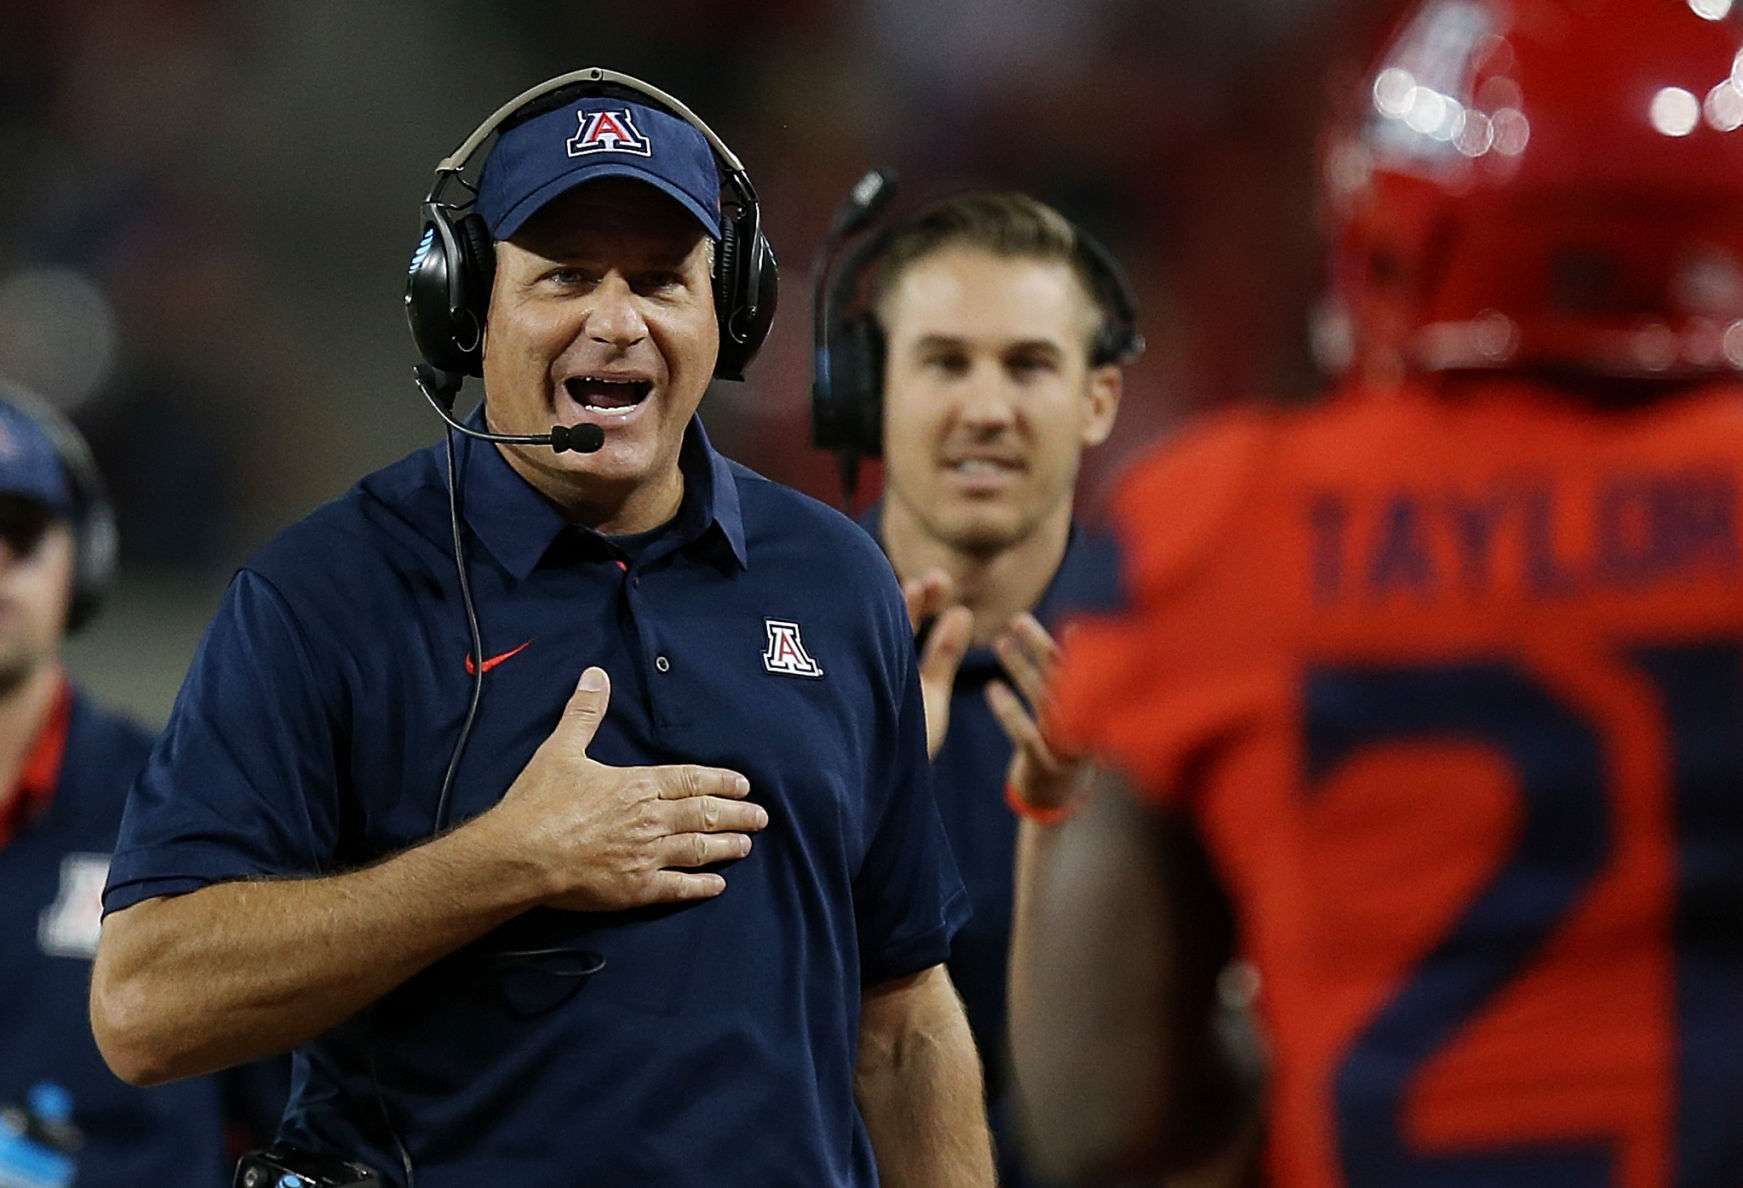 State paid nearly $140K to defend Rich Rodriguez in federal Title IX lawsuit